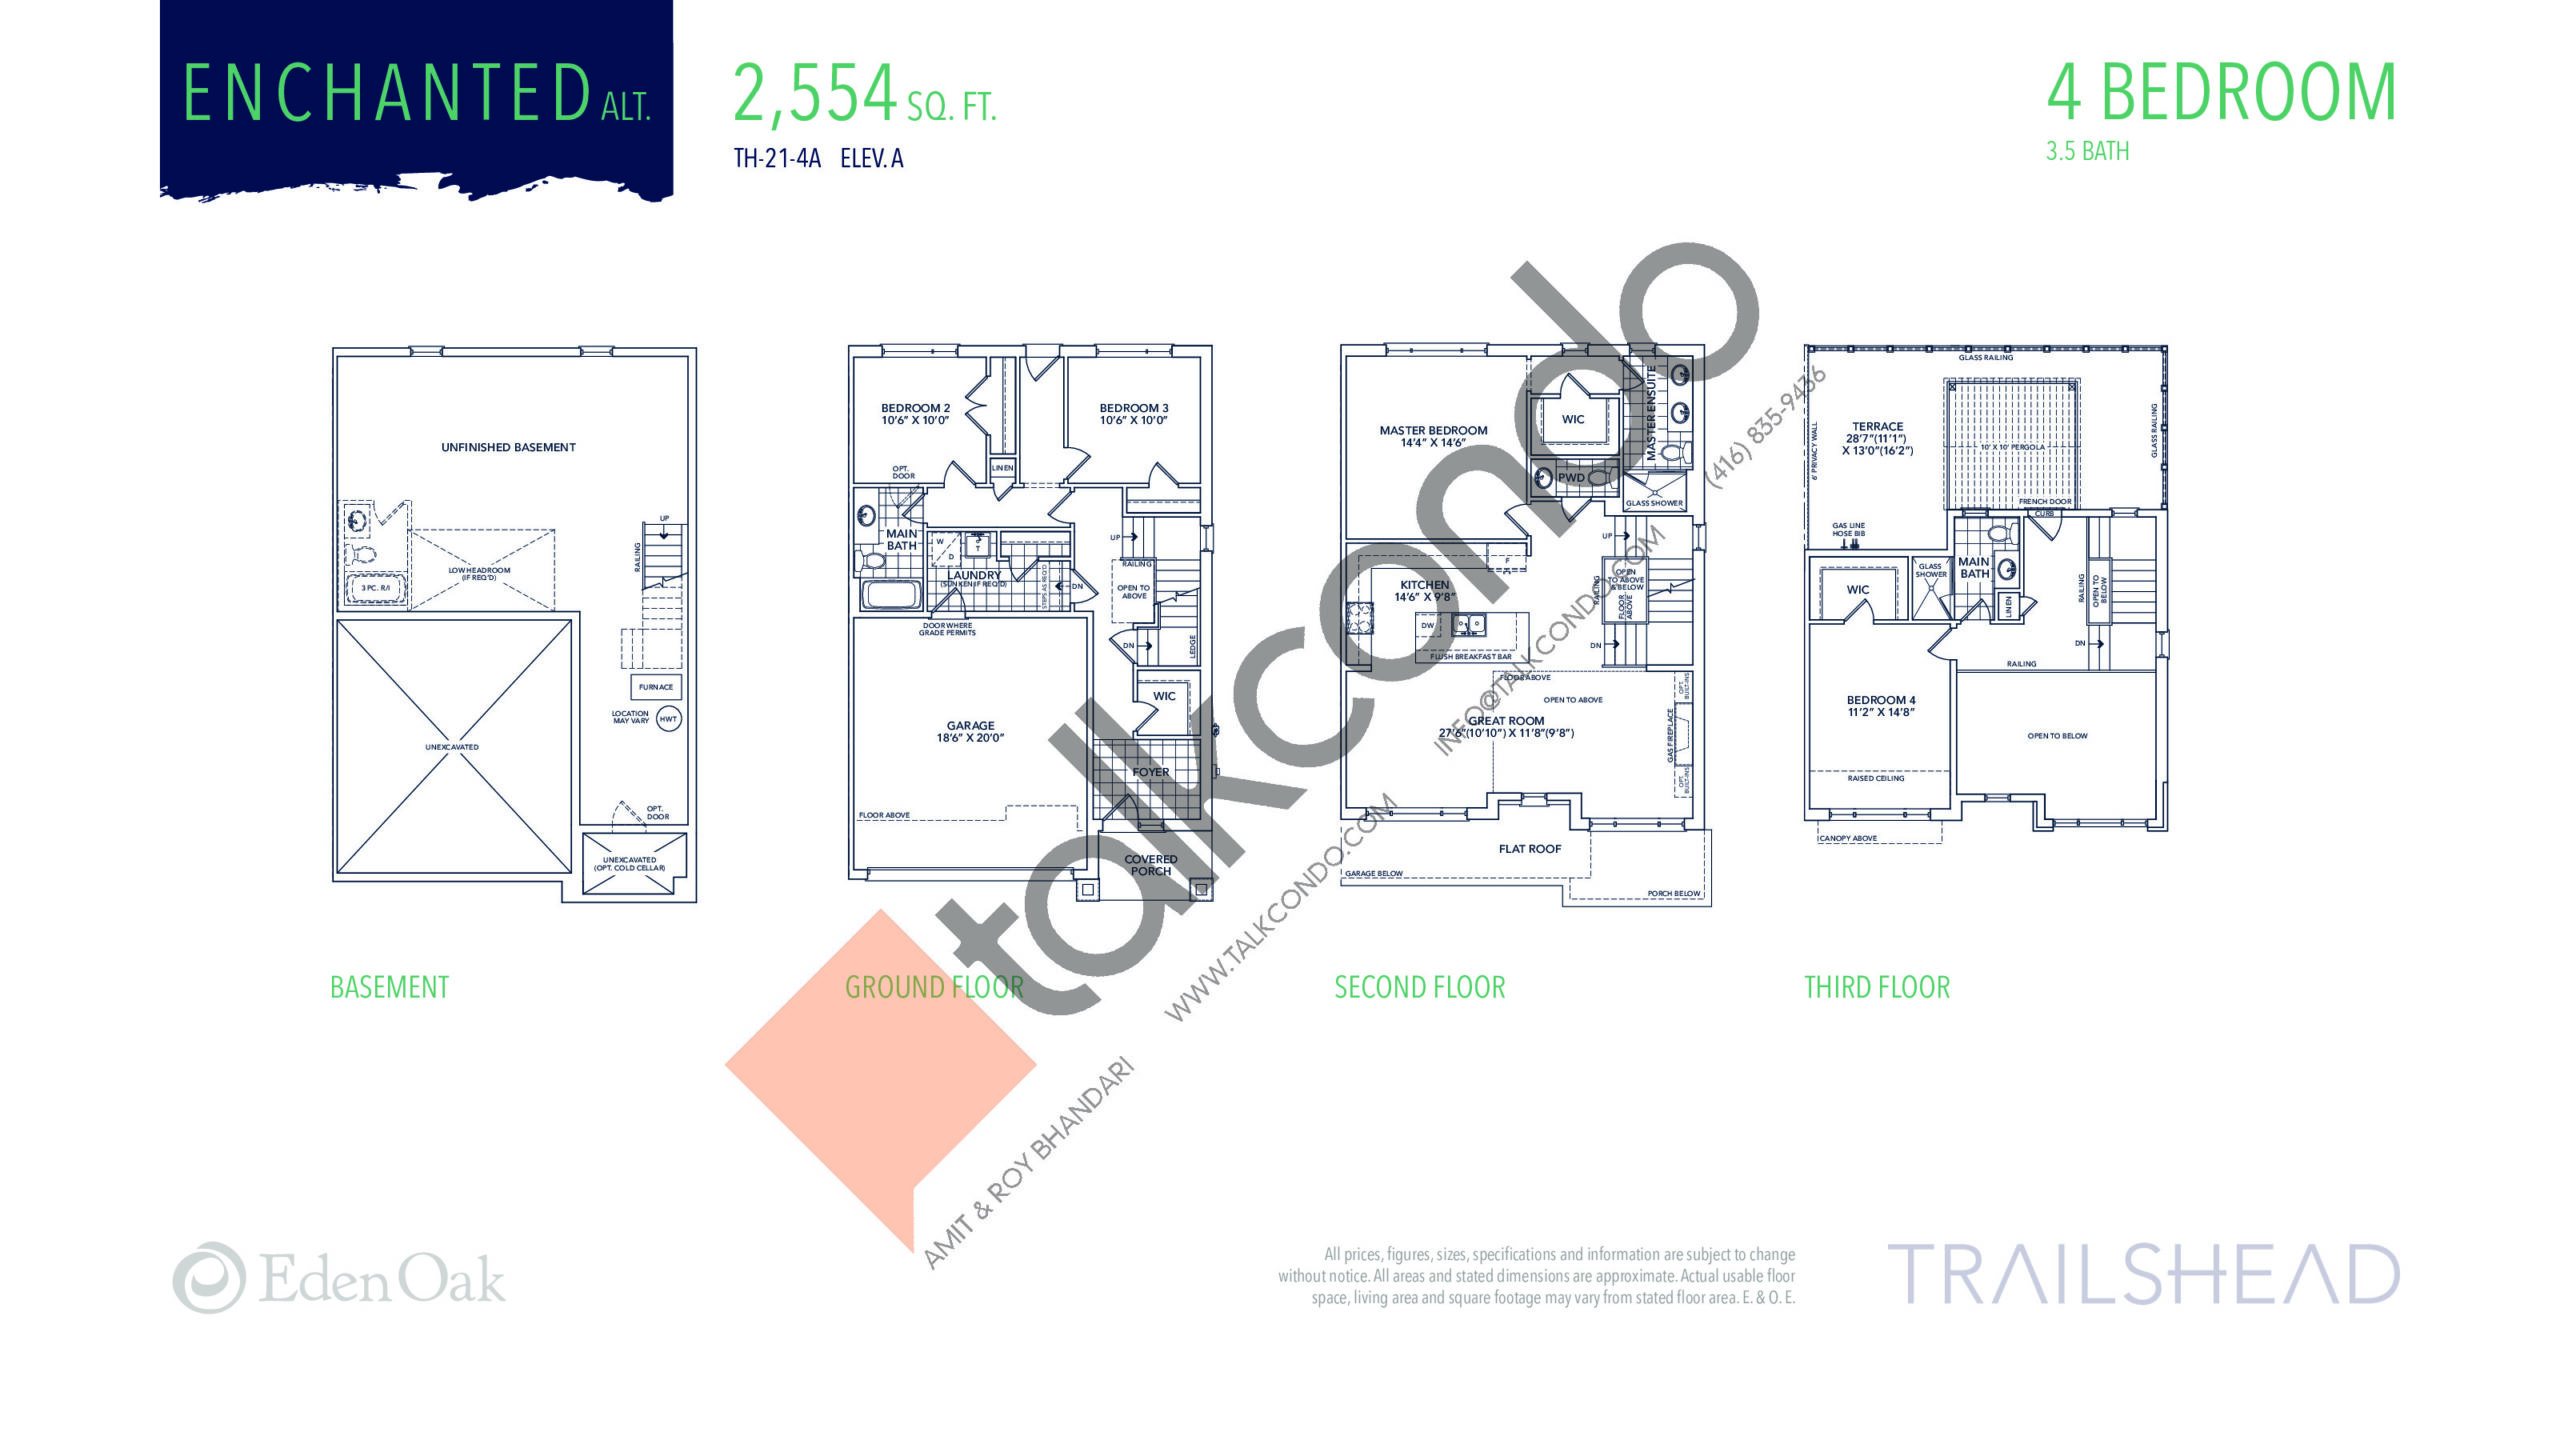 Enchanted Alt. (1/2) Floor Plan at Trailshead Towns - 2554 sq.ft